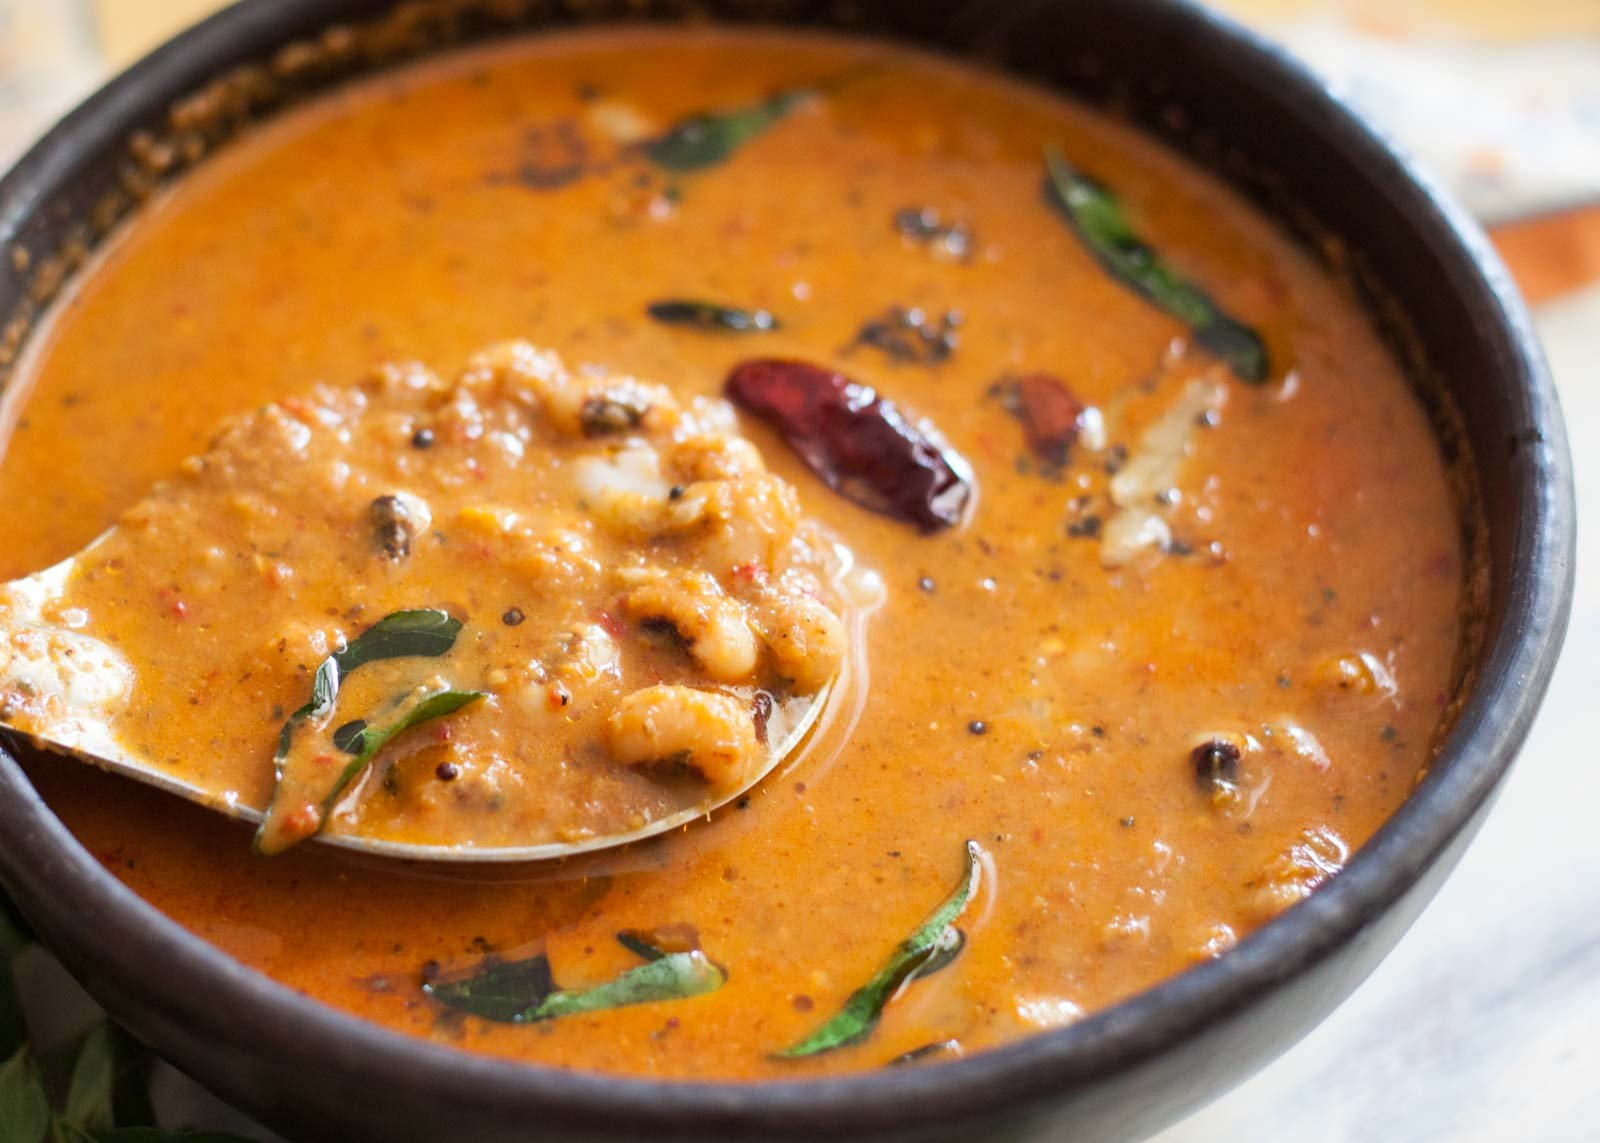 Mangalorean Style Lobia Gassi Recipe - Black Eyed Peas In Coconut Curry